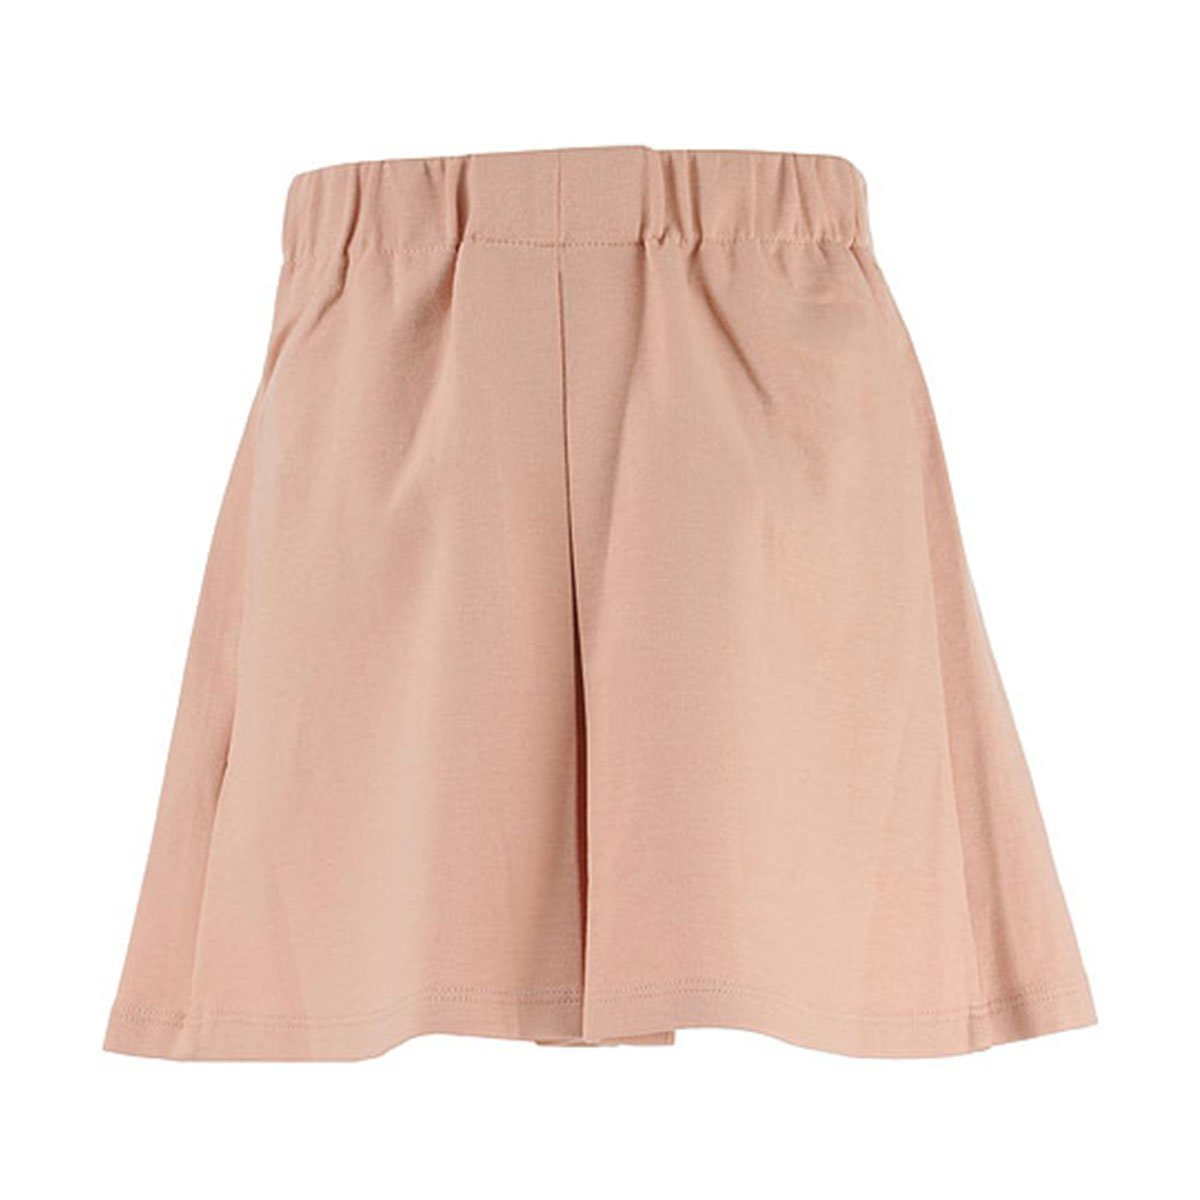 Chloe - Skirt With Buttons, Pink